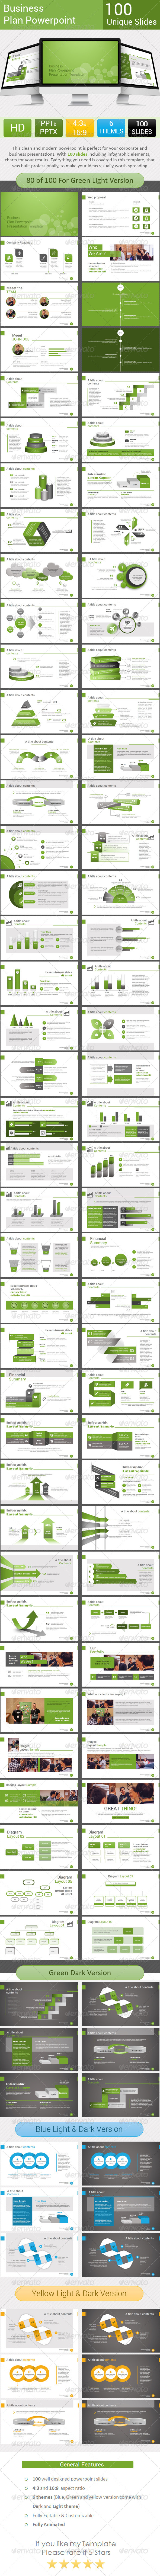 GraphicRiver Business Plan Powerpoint Template Vol.2 8295011